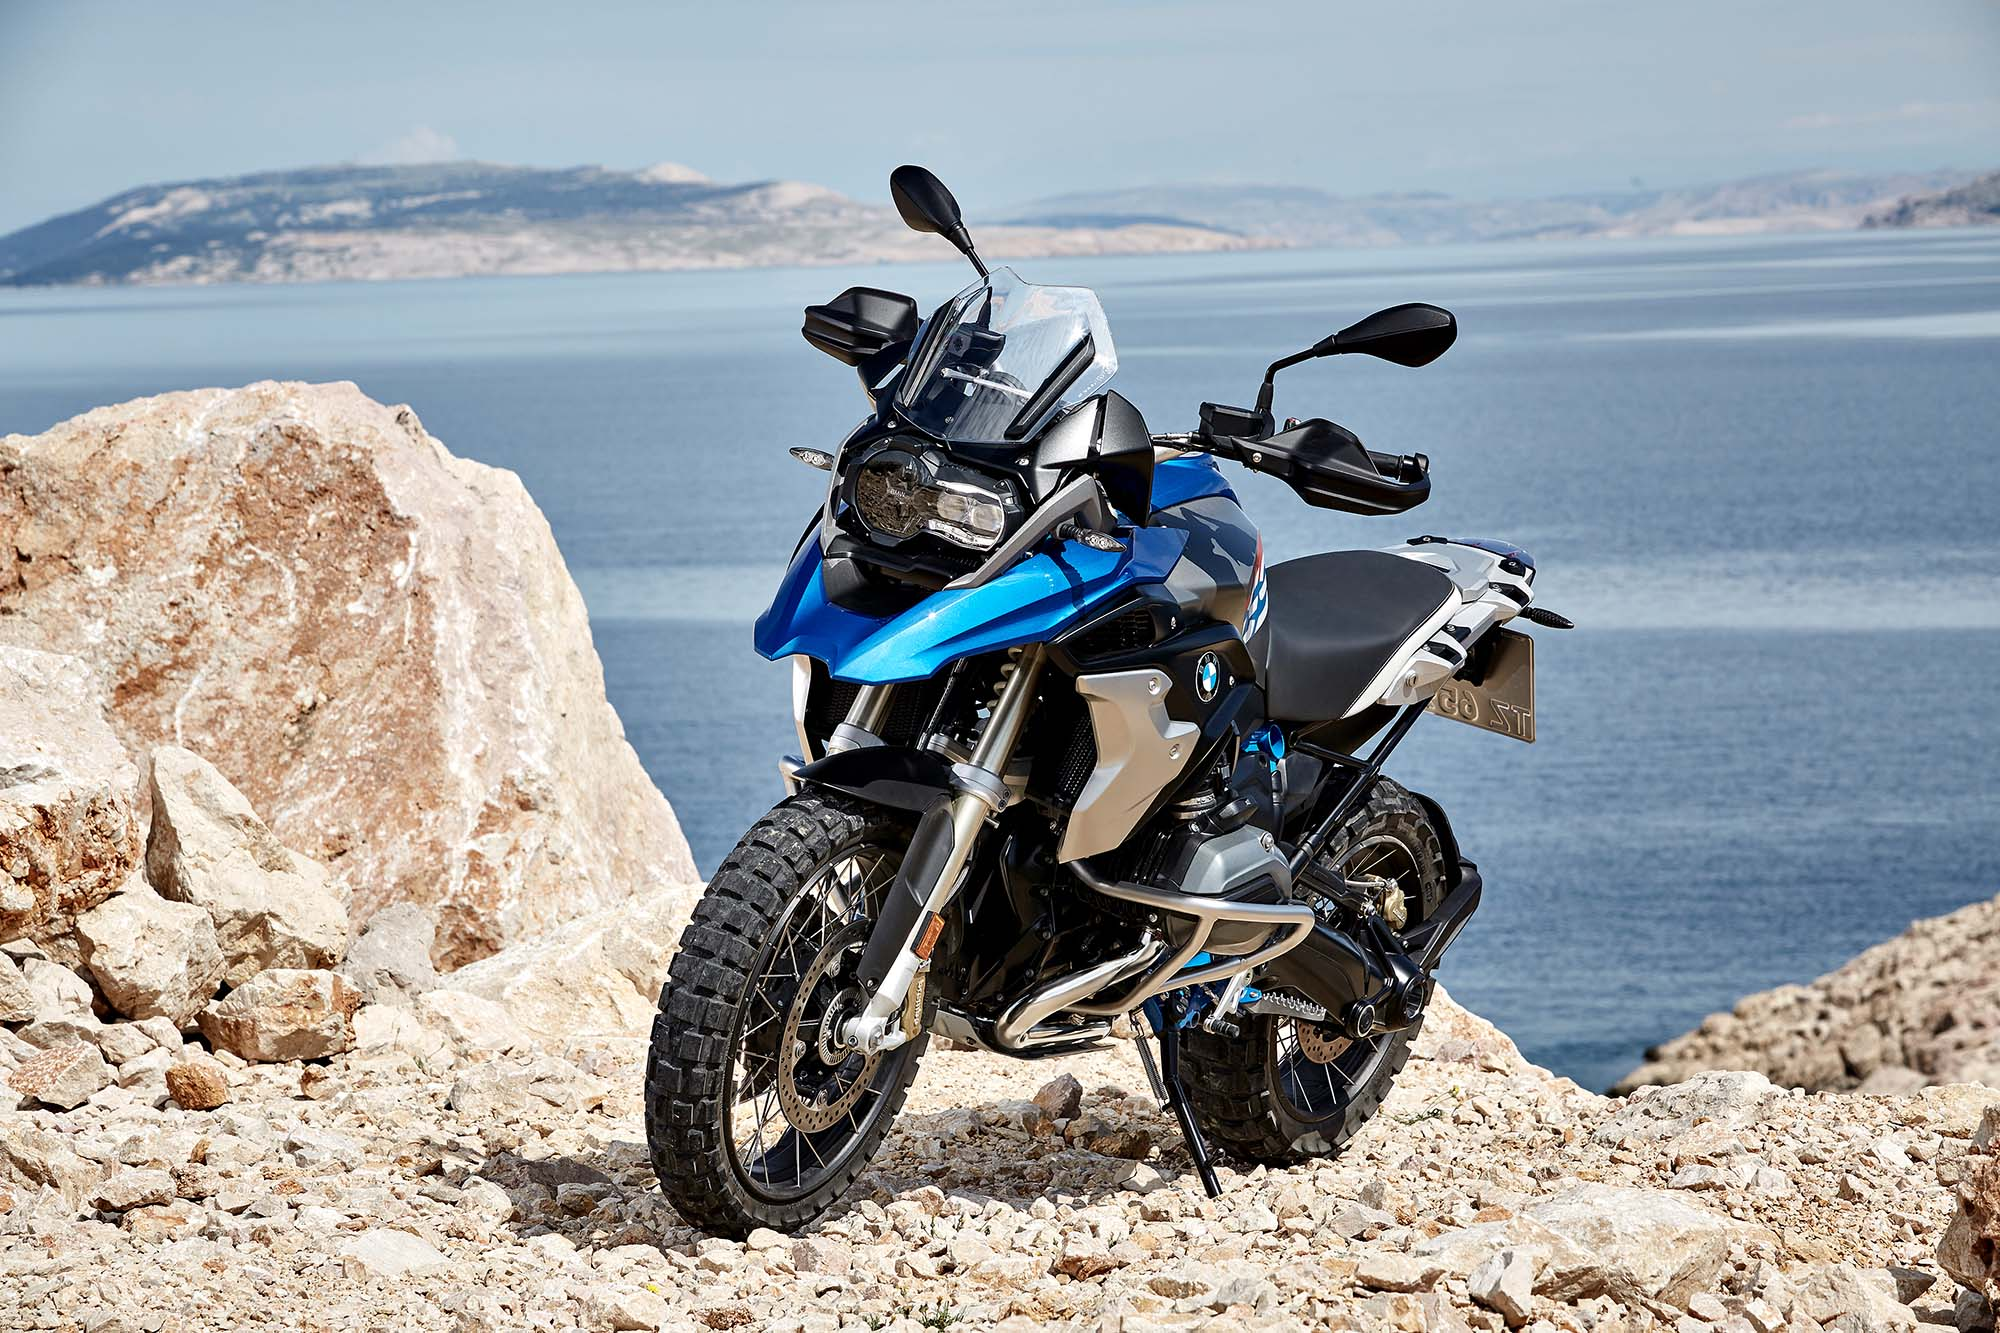 2017 BMW R1200GS Gets Upgrades, And a Little Rallye